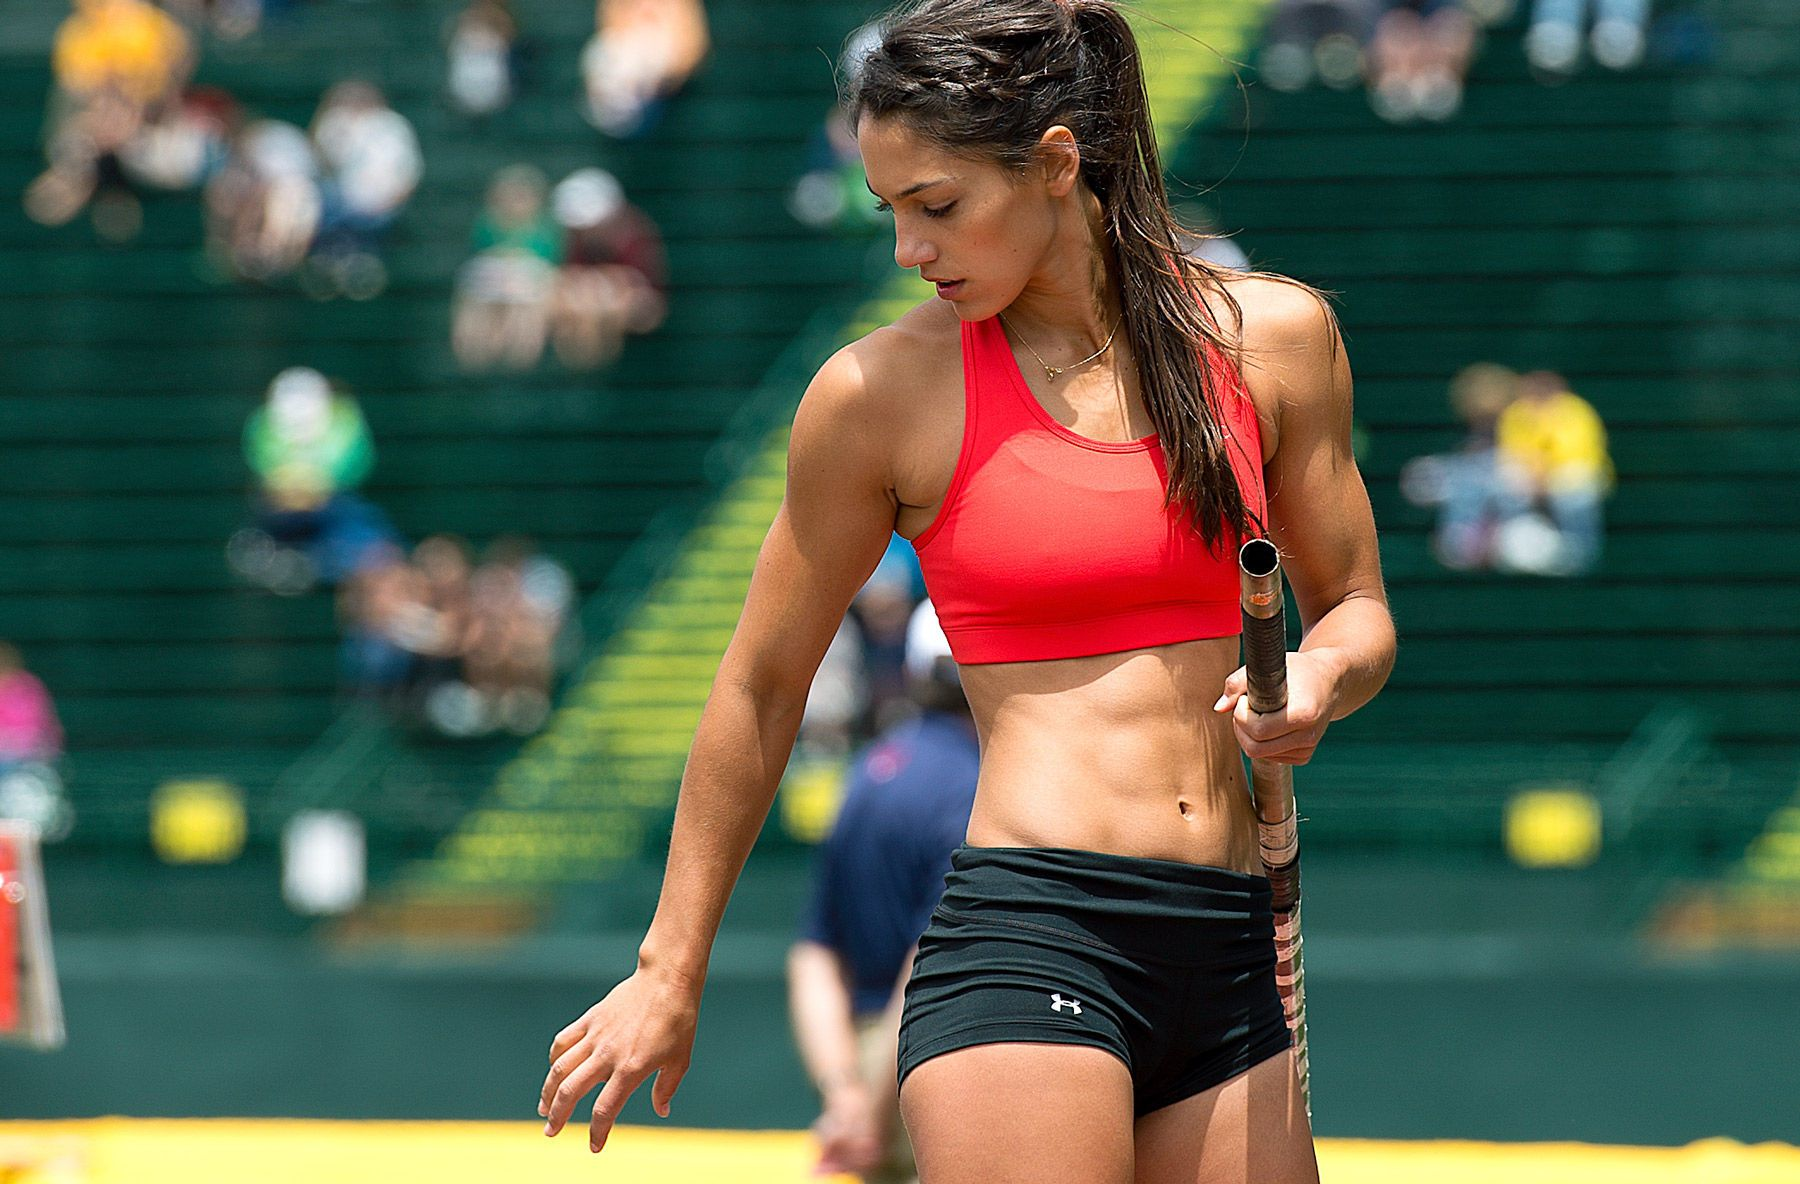 1ustrials2012_alison_stokke_pole_vault_track_and_field_image_jeff_cohen_photographer_lb.jpg